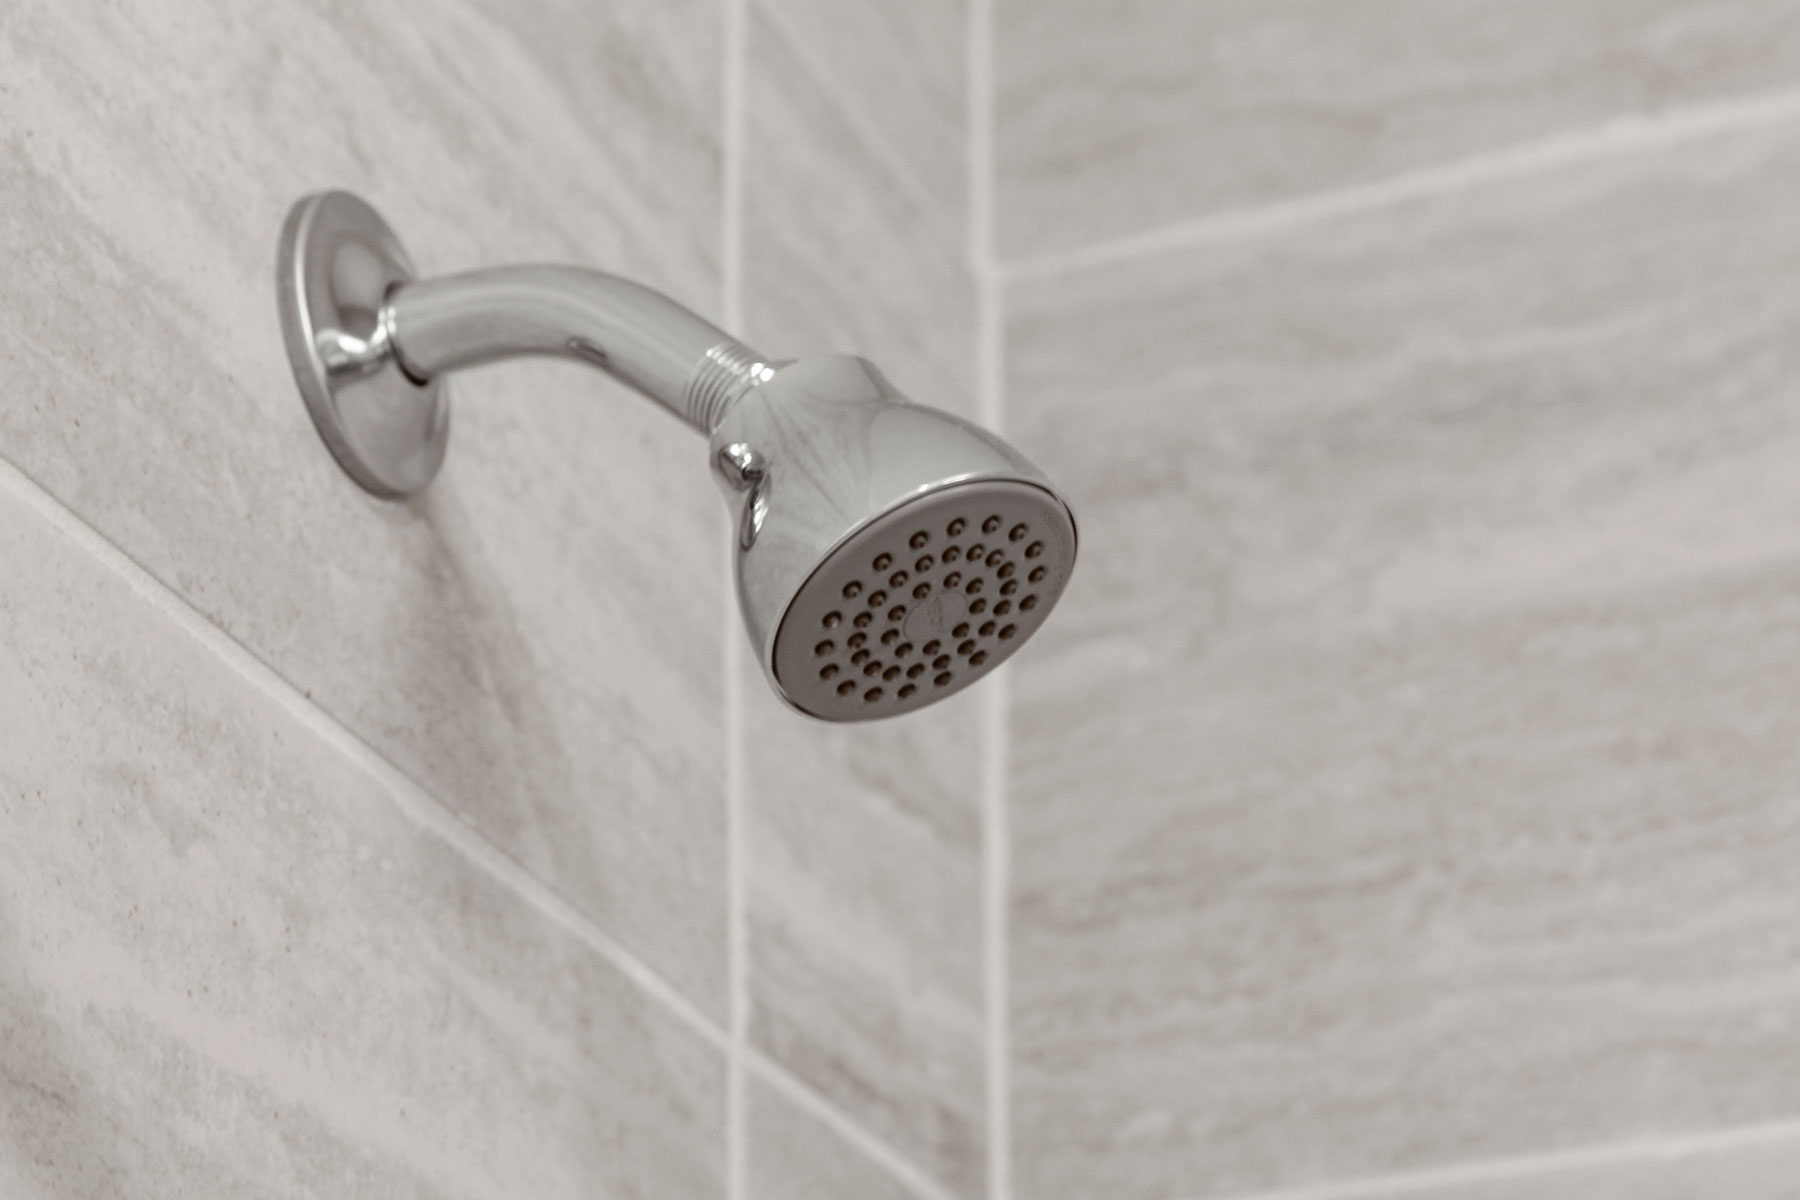 Detail of chrome showerhead and tiles